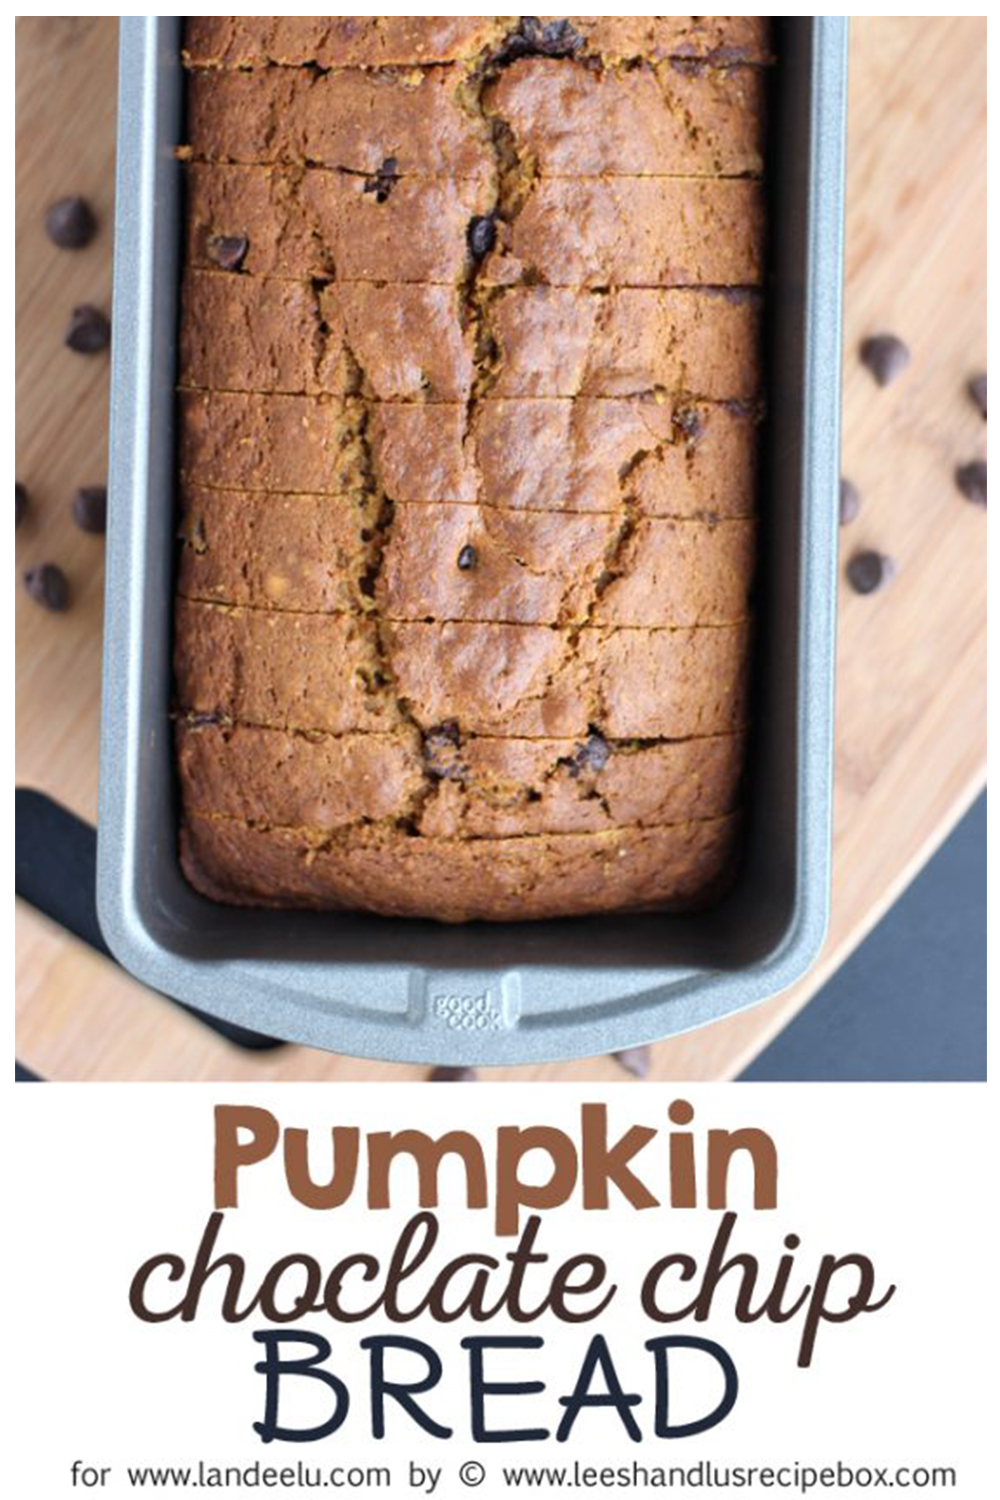 The perfect chocolate chip pumpkin bread for fall!  #pumpkinbread #pumpkinrecipe #fallrecipe #fallbaking